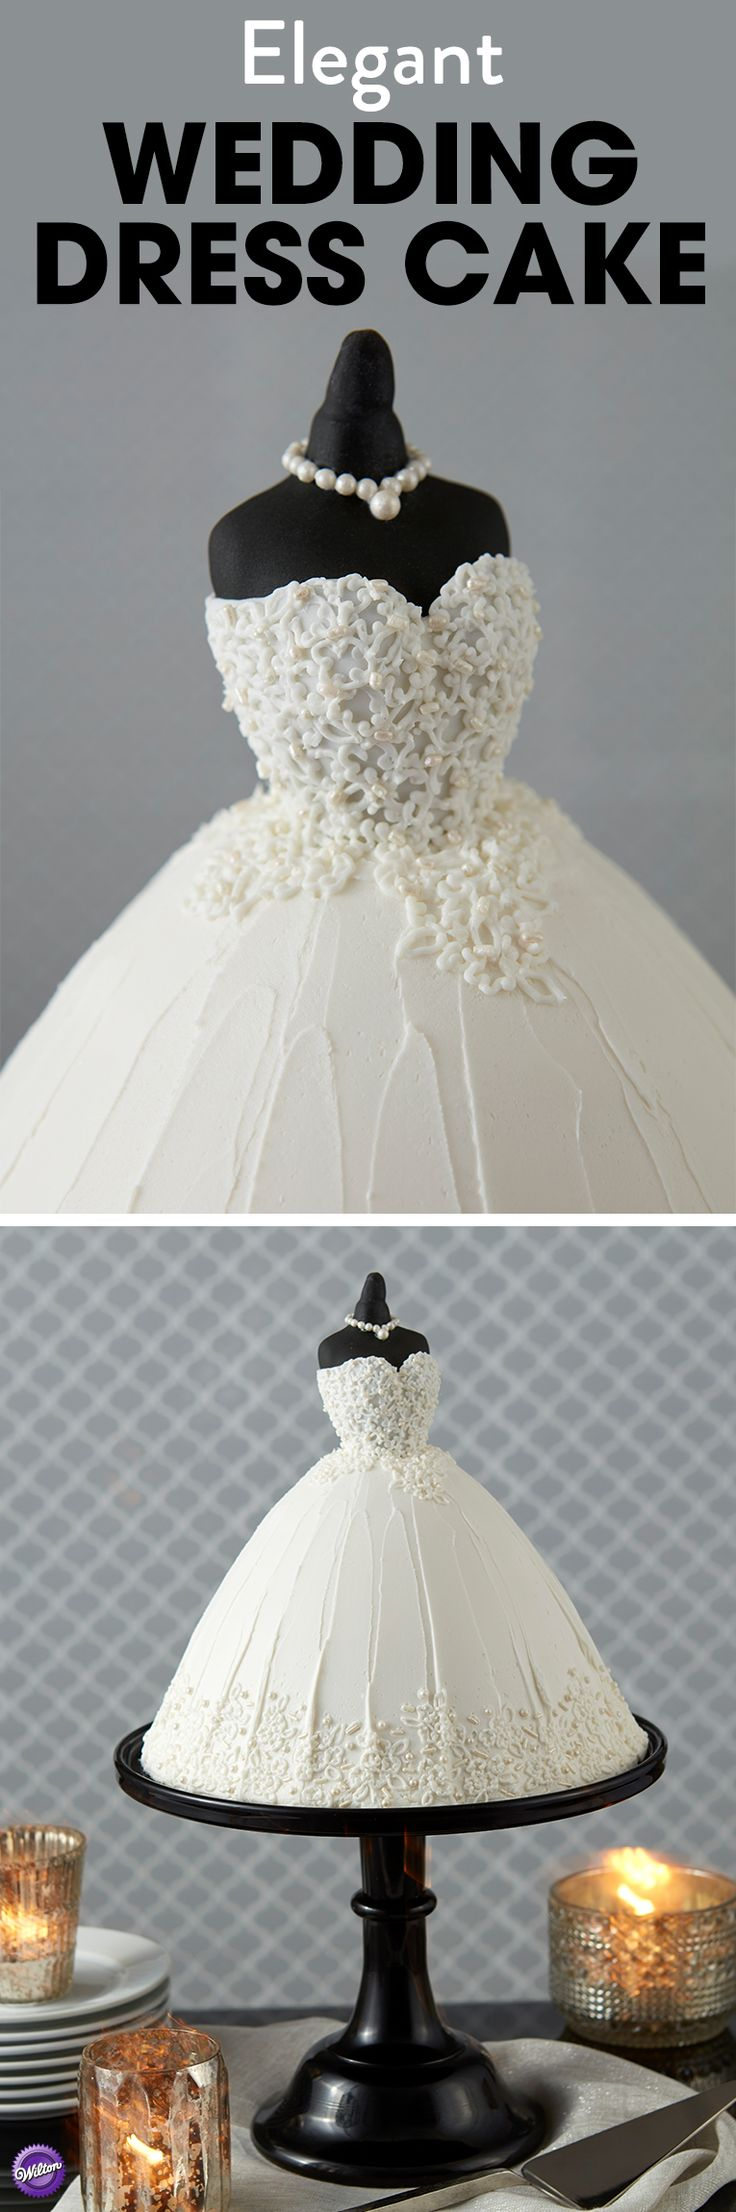 Elegant Wedding Dress Cake - Make a cake the bride is sure to love with this Elegant Wedding Dress Cake. Made using the Wilton Wonder Mold Cake Pan and embellished with pearlized jimmies and Sugar Pearls, this stunning wedding cake looks like it's straight off the runway. A wonderful treat for a bridal shower or a fun dessert the bridal party can share, this wedding dress cake is one that's sure to be cherished and remembered for years to come.